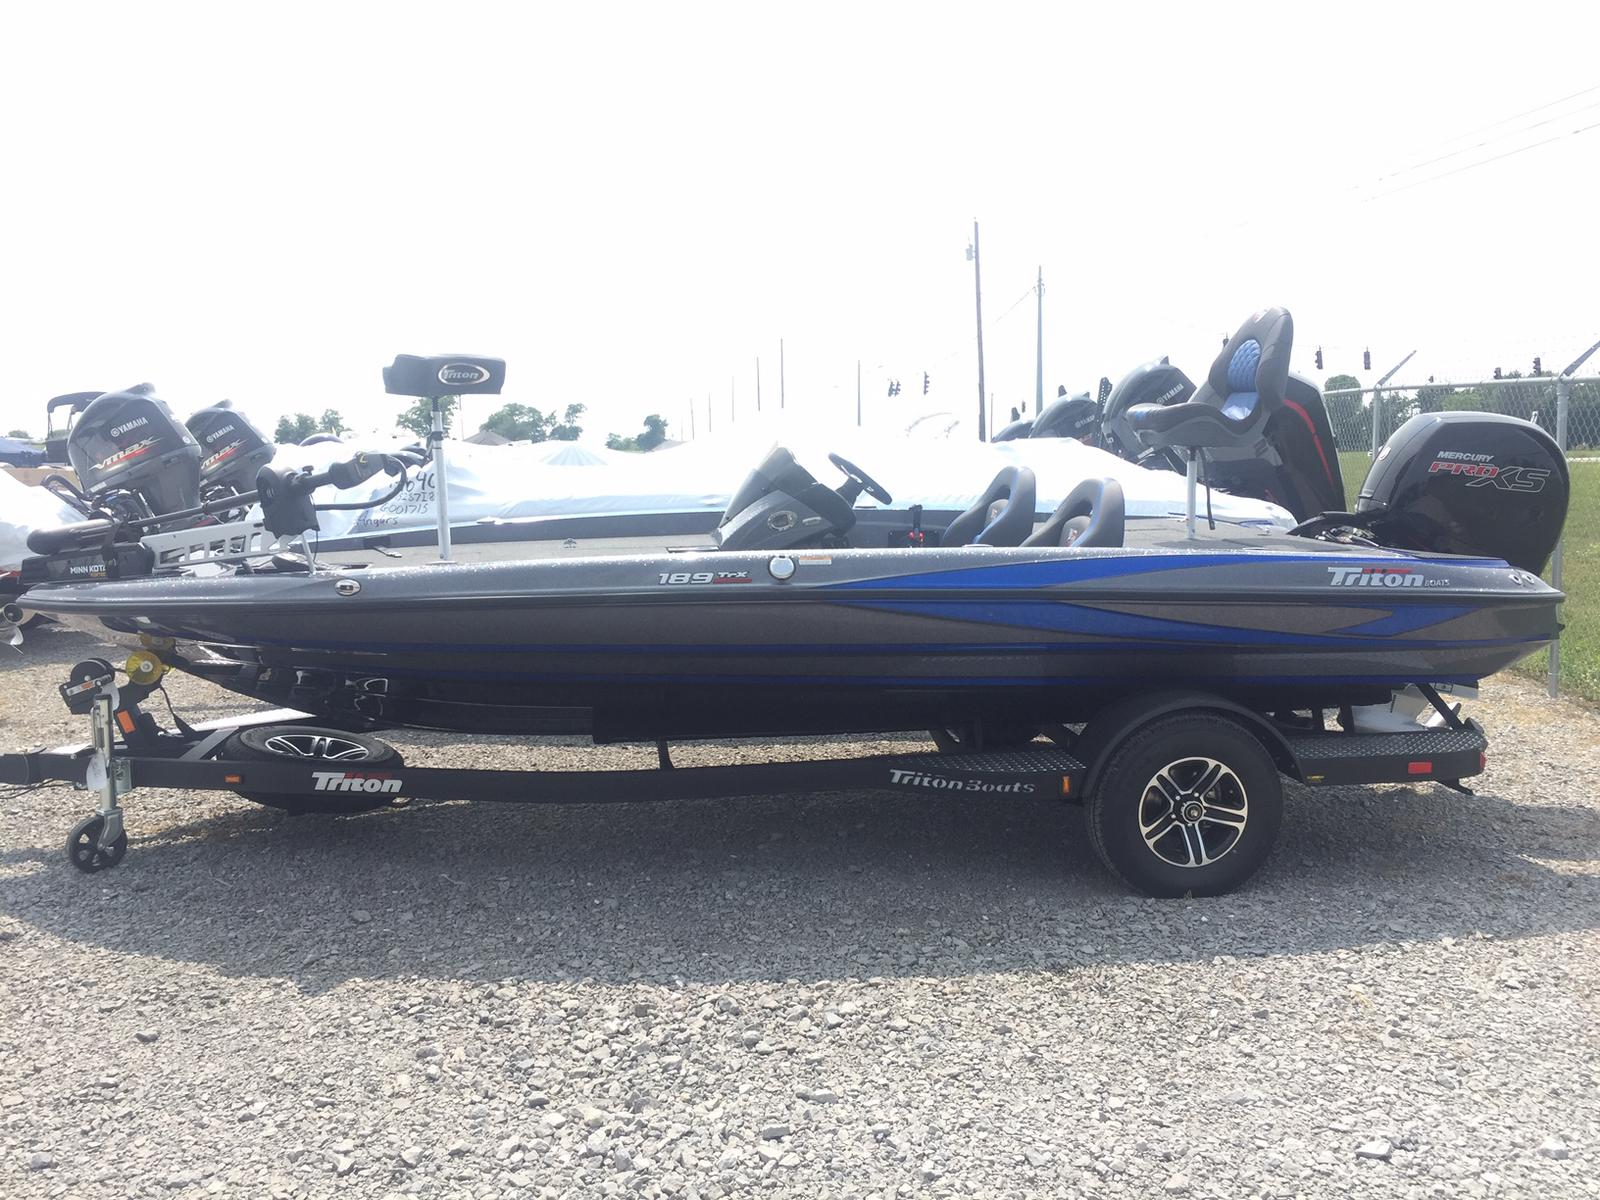 Inventory from Evinrude and Triton Boats Lancaster Lancaster, KY